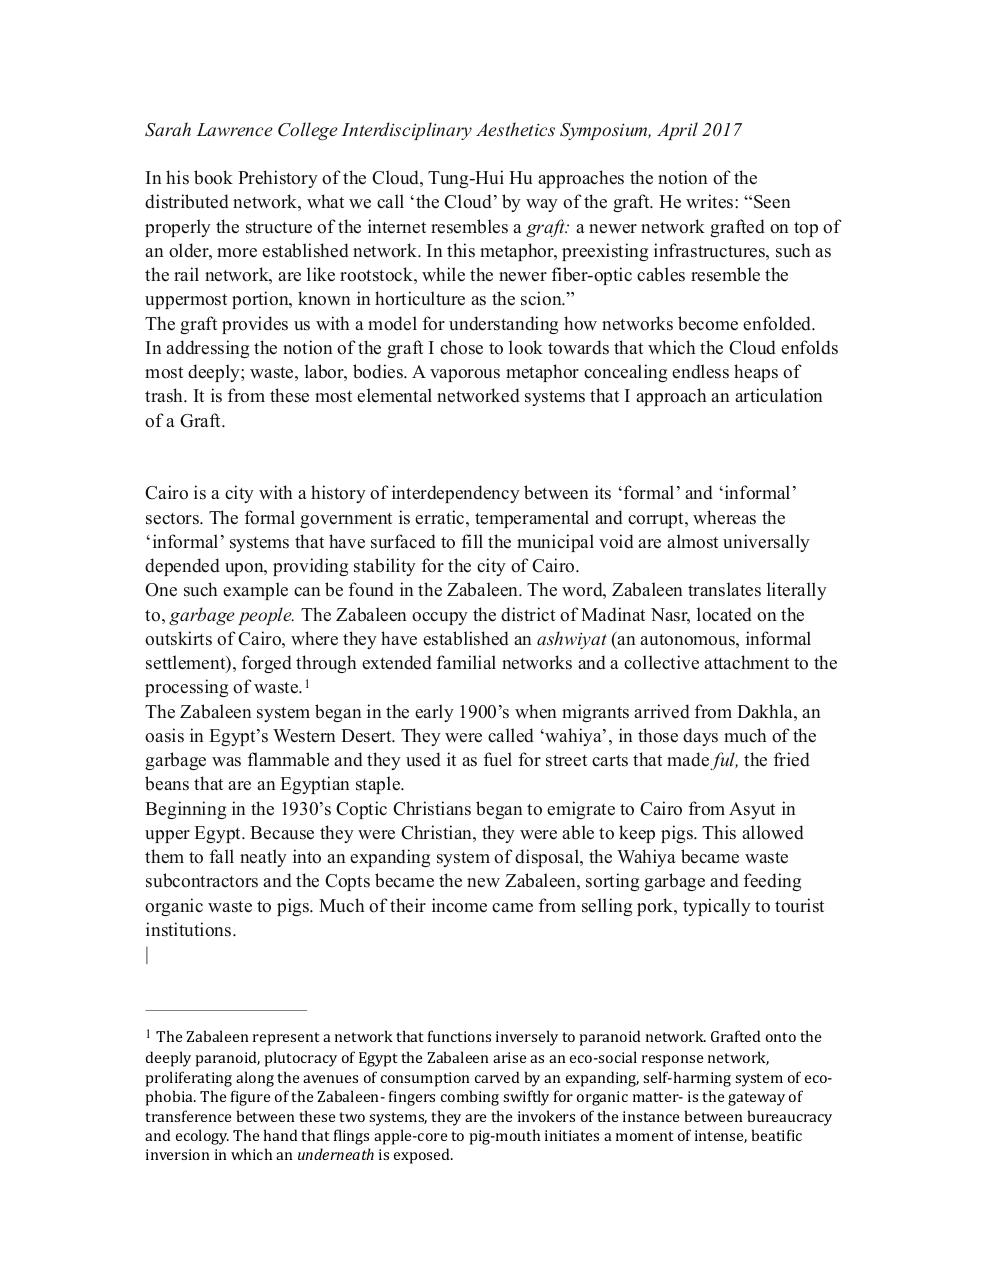 The Network, The Graft and the Zabaleen.pdf - page 1/3